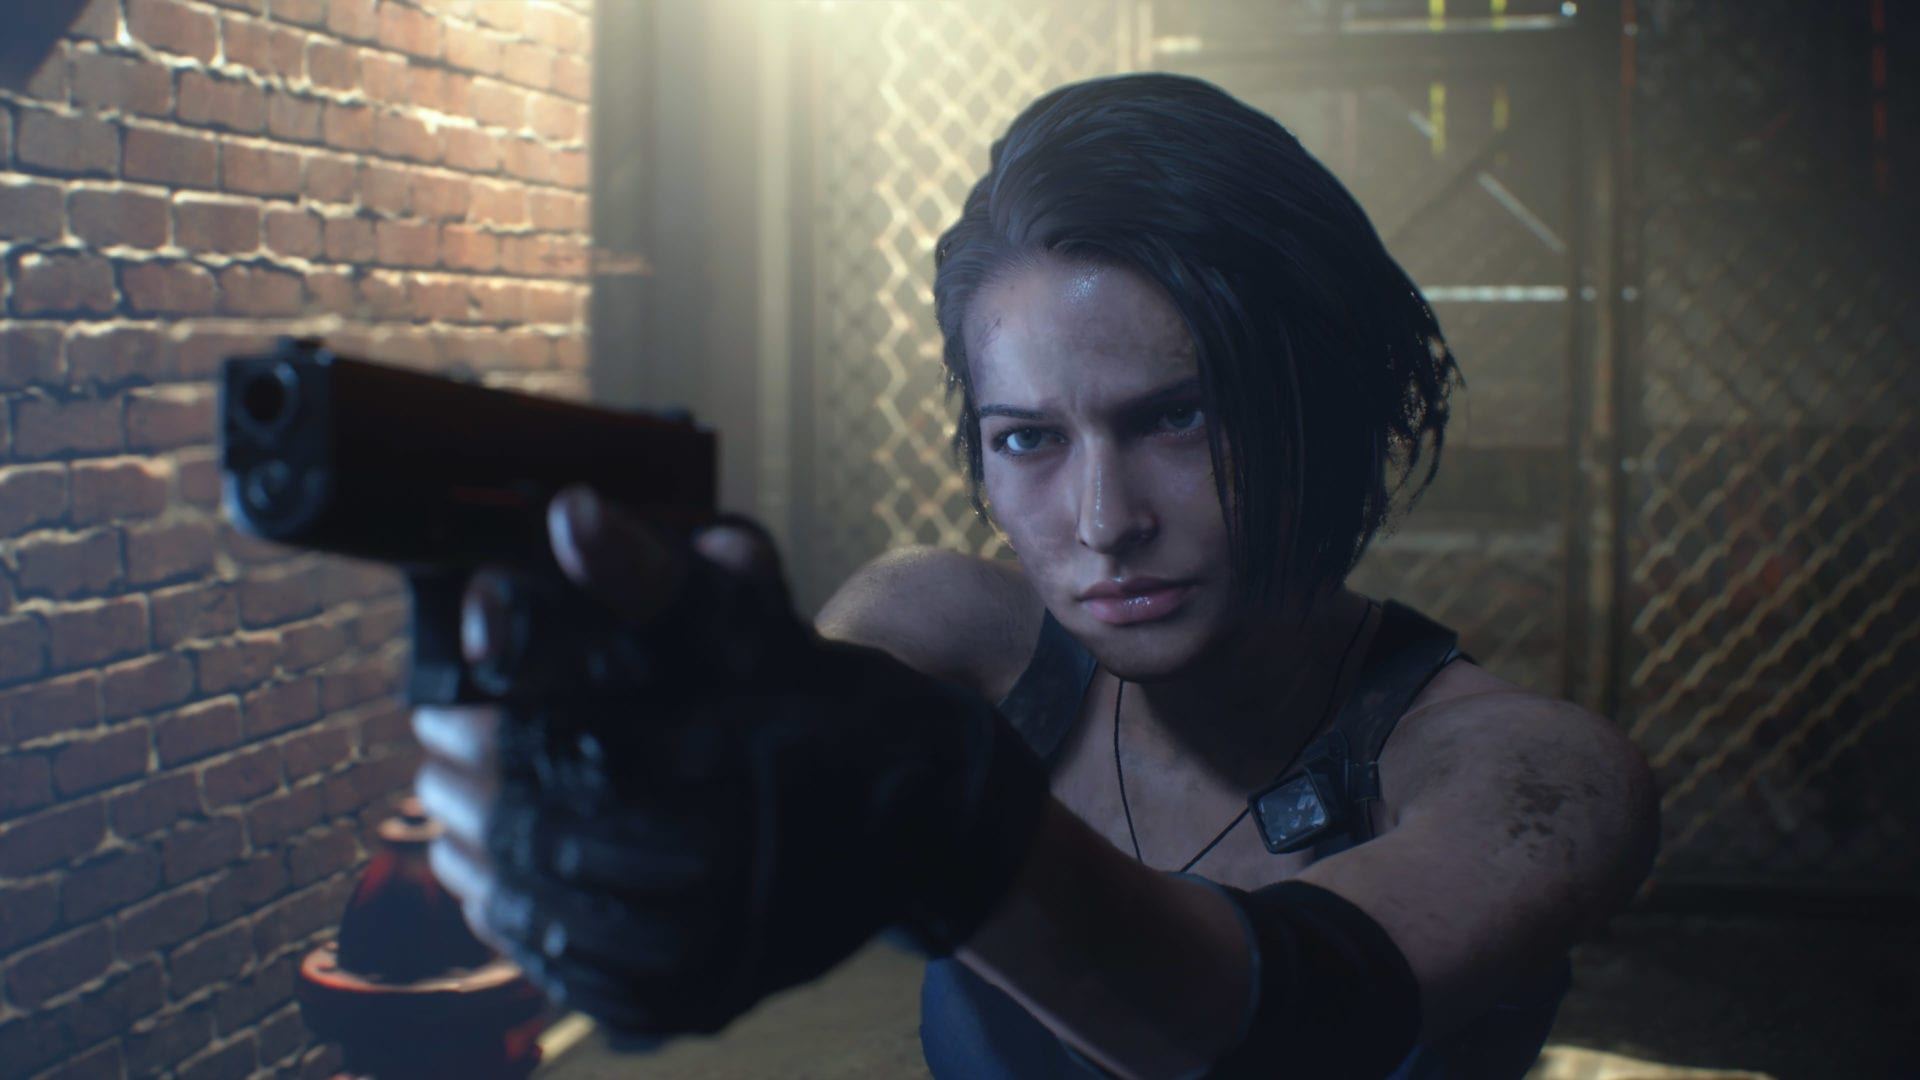 4k Hd Resident Evil 3 Wallpapers You Need To Make Your Desktop